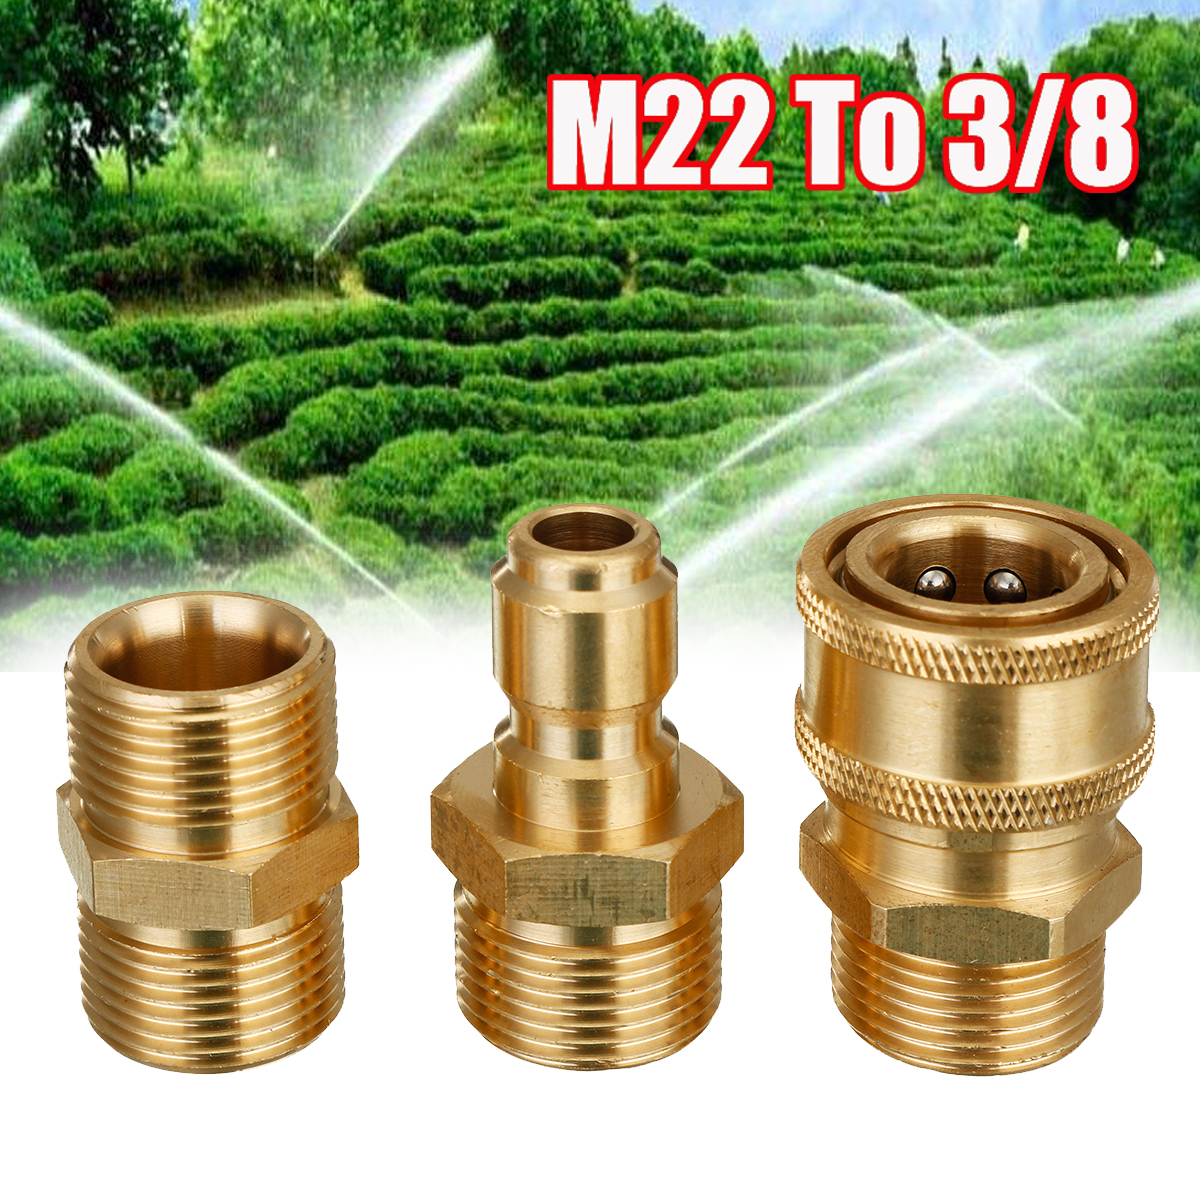 цена на 22mm 3PCS M22 To 3/8 Quick Release Pressure Washer Hose Coupling fitting Connector Replacement Garden Tool